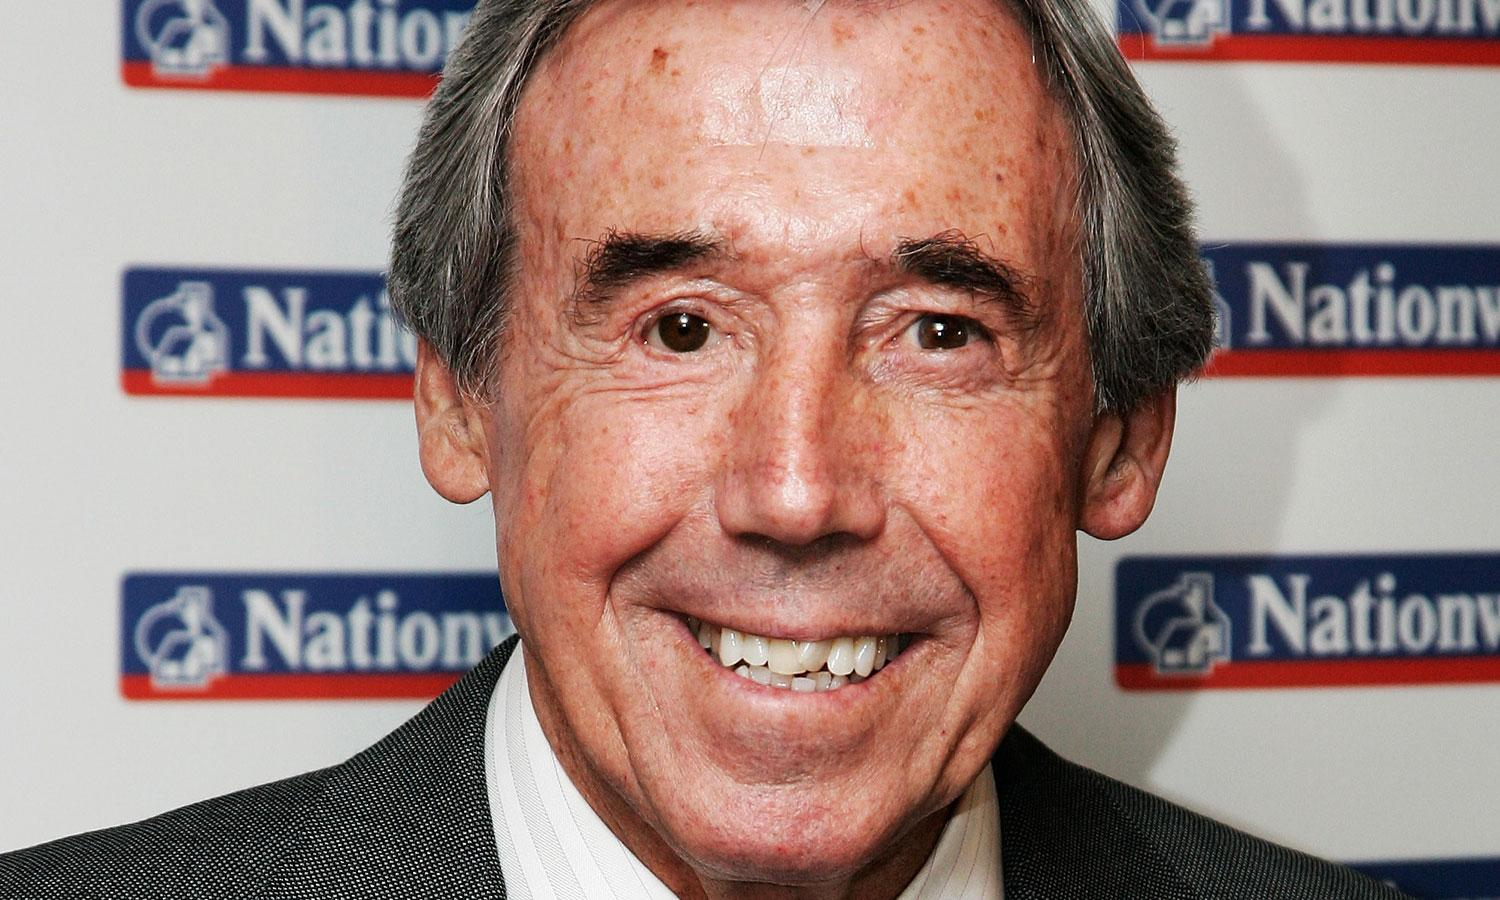 "World Cup winning goalkeeper Gordon Banks <a href=""https://uk.sports.yahoo.com/news/gordon-banks-englands-world-cup-winning-goalkeeper-dies-aged-81-100020305.html"" data-ylk=""slk:passed away at the age of 81;outcm:mb_qualified_link;_E:mb_qualified_link;ct:story;"" class=""link rapid-noclick-resp yahoo-link"">passed away at the age of 81</a> in February this year. He was part of England's victorious 1966 football team in the first and as-of-yet only time the country has won the coveted title. (Photo by Chris Jackson/Getty Images)"